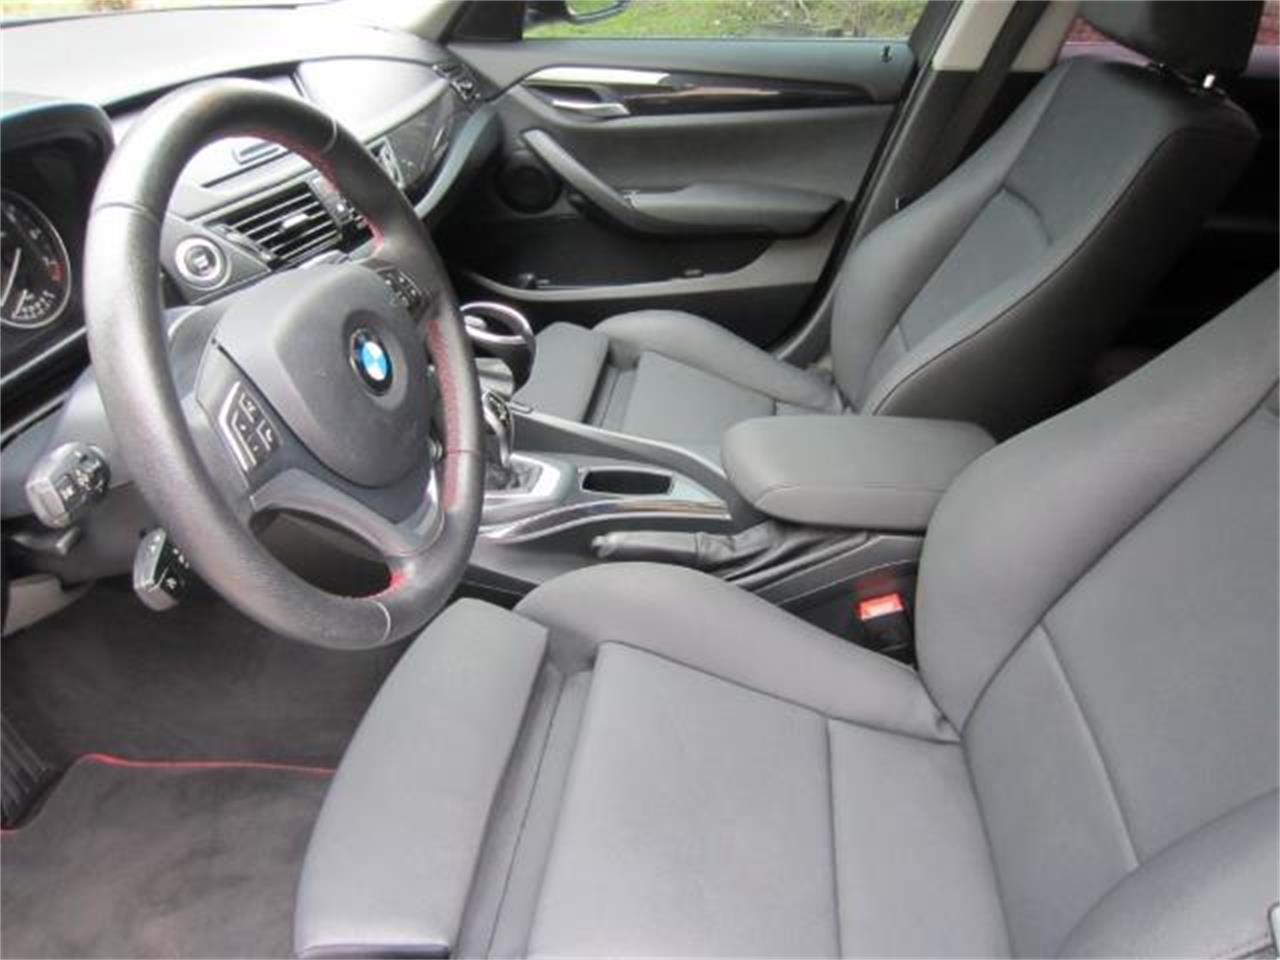 Large Picture of '14 BMW X1 located in Florida - $19,900.00 - LRWY